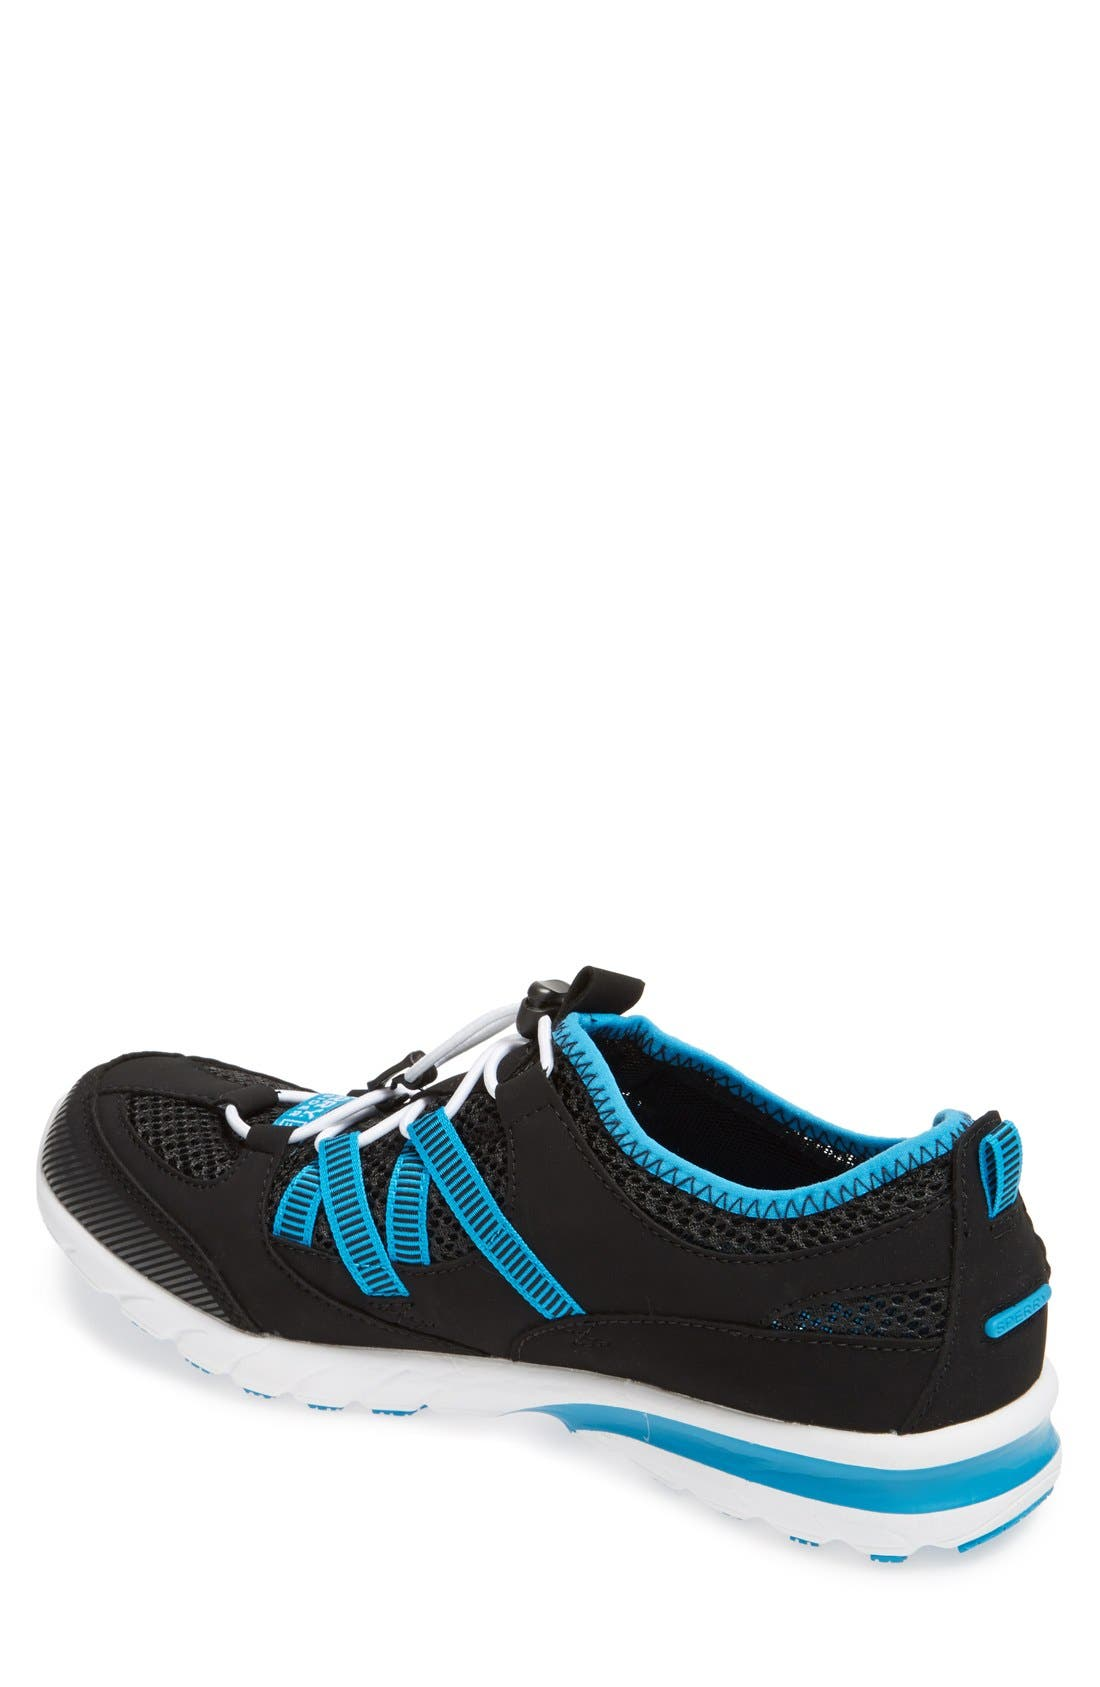 Alternate Image 2  - Sperry Top-Sider® 'Shock Light' Sneaker (Men)